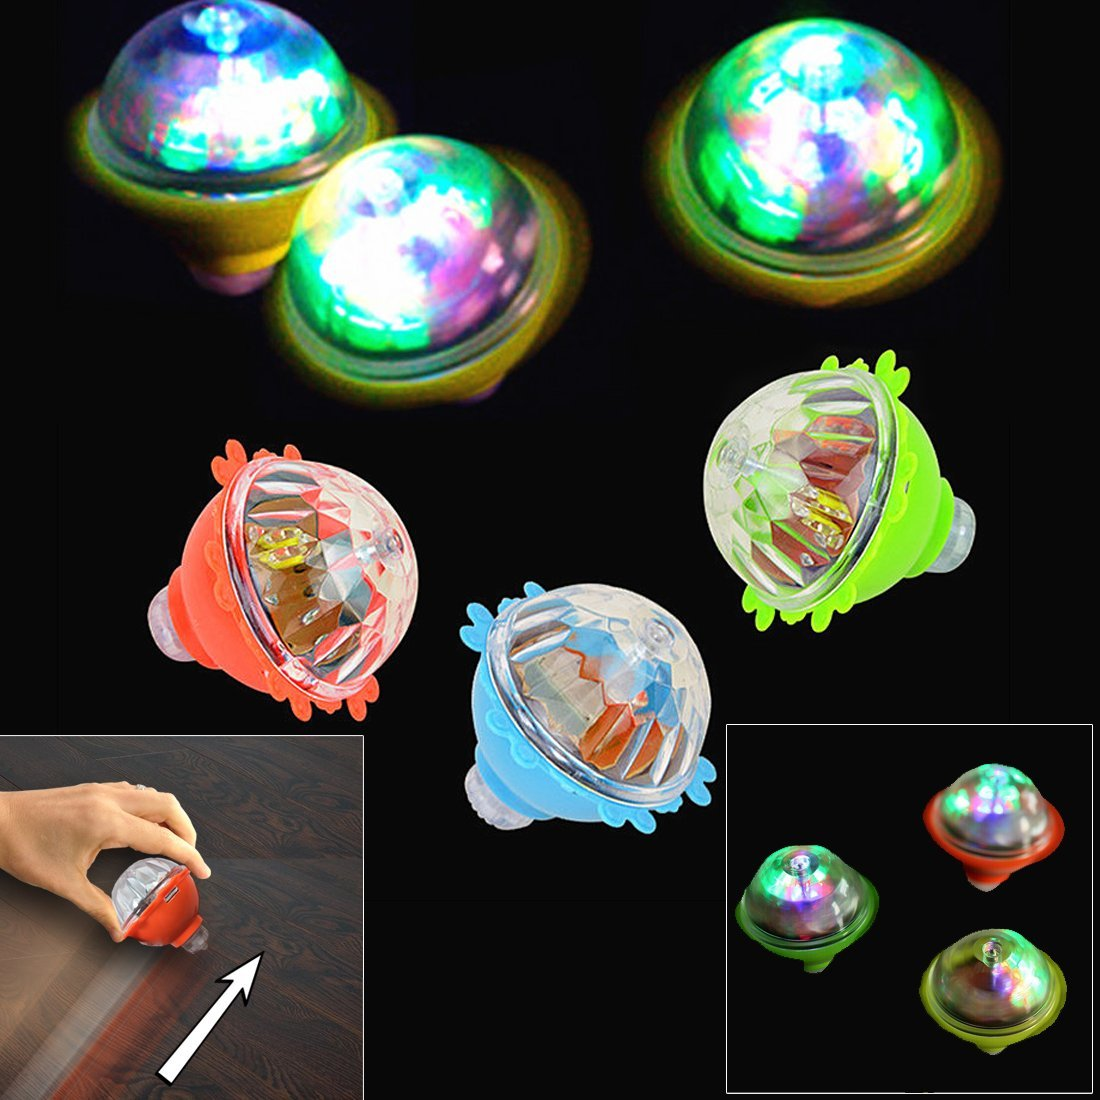 Dazzling Toys 6 Pack Light Up Spinners | LED Light Up Inertia Gyro Peg Top | 6 Pcs | Rotating Flashing Kids Top